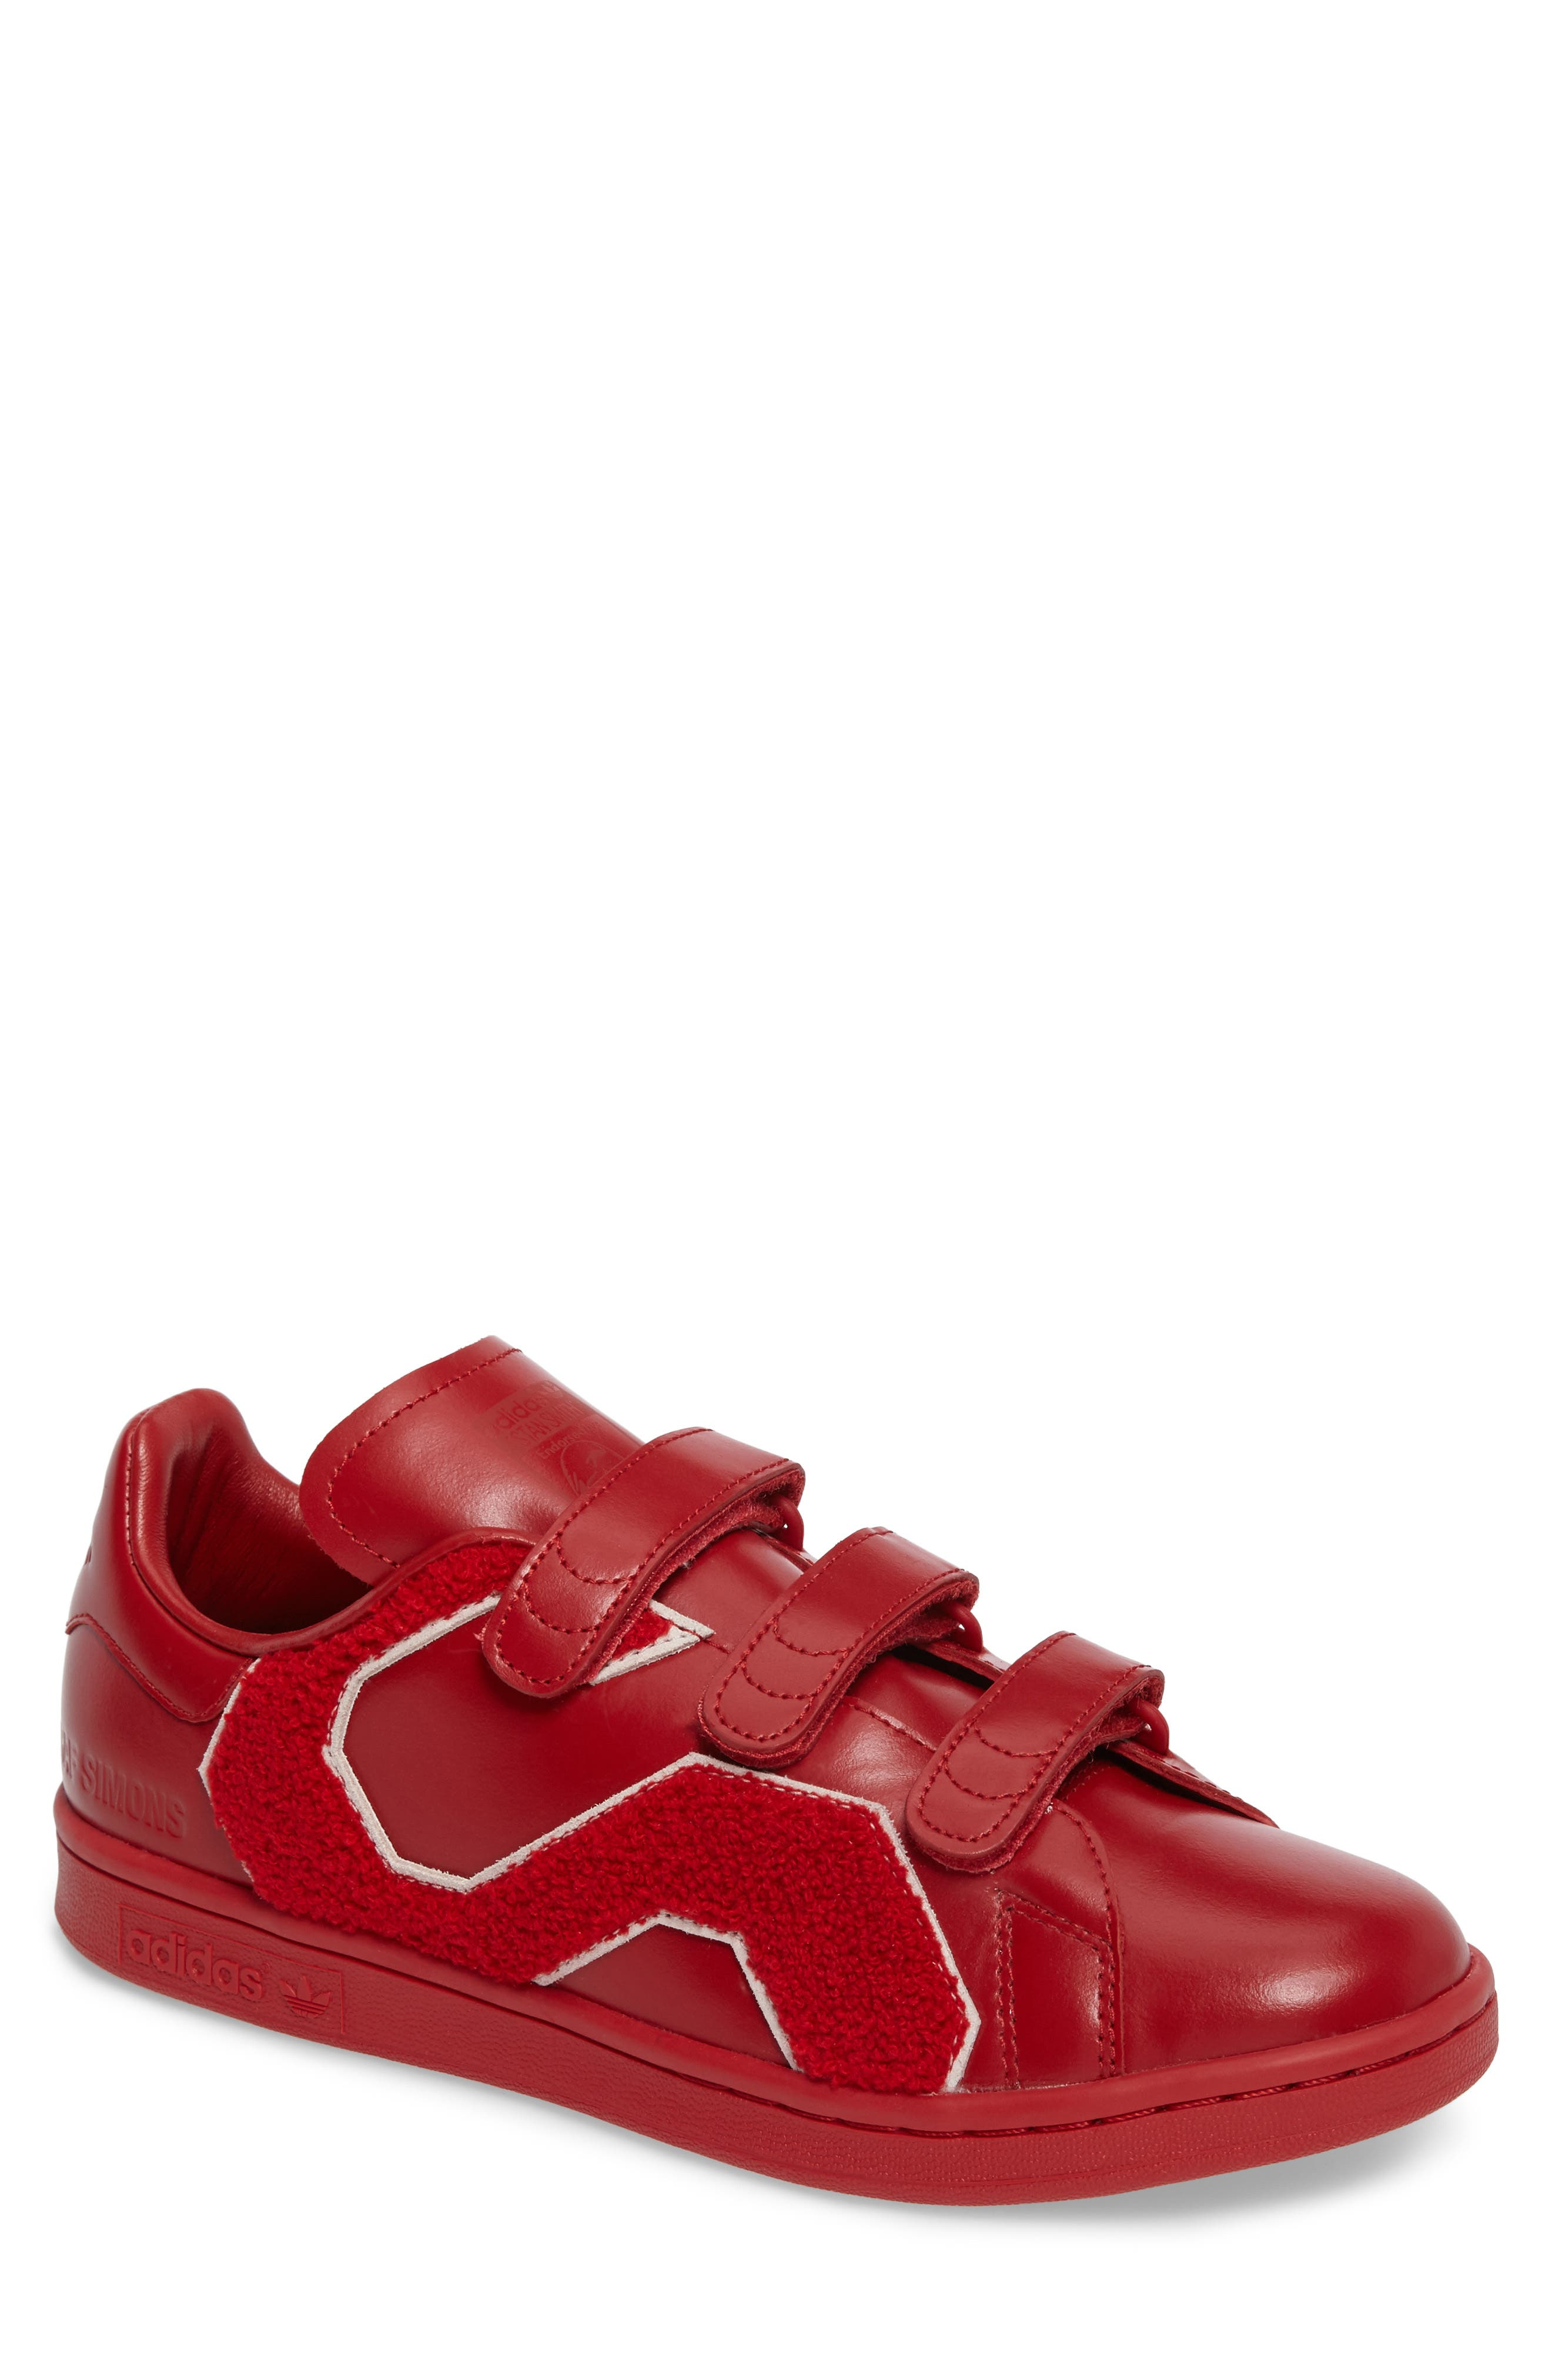 Stan Smith Sneaker,                             Main thumbnail 1, color,                             Powder Red